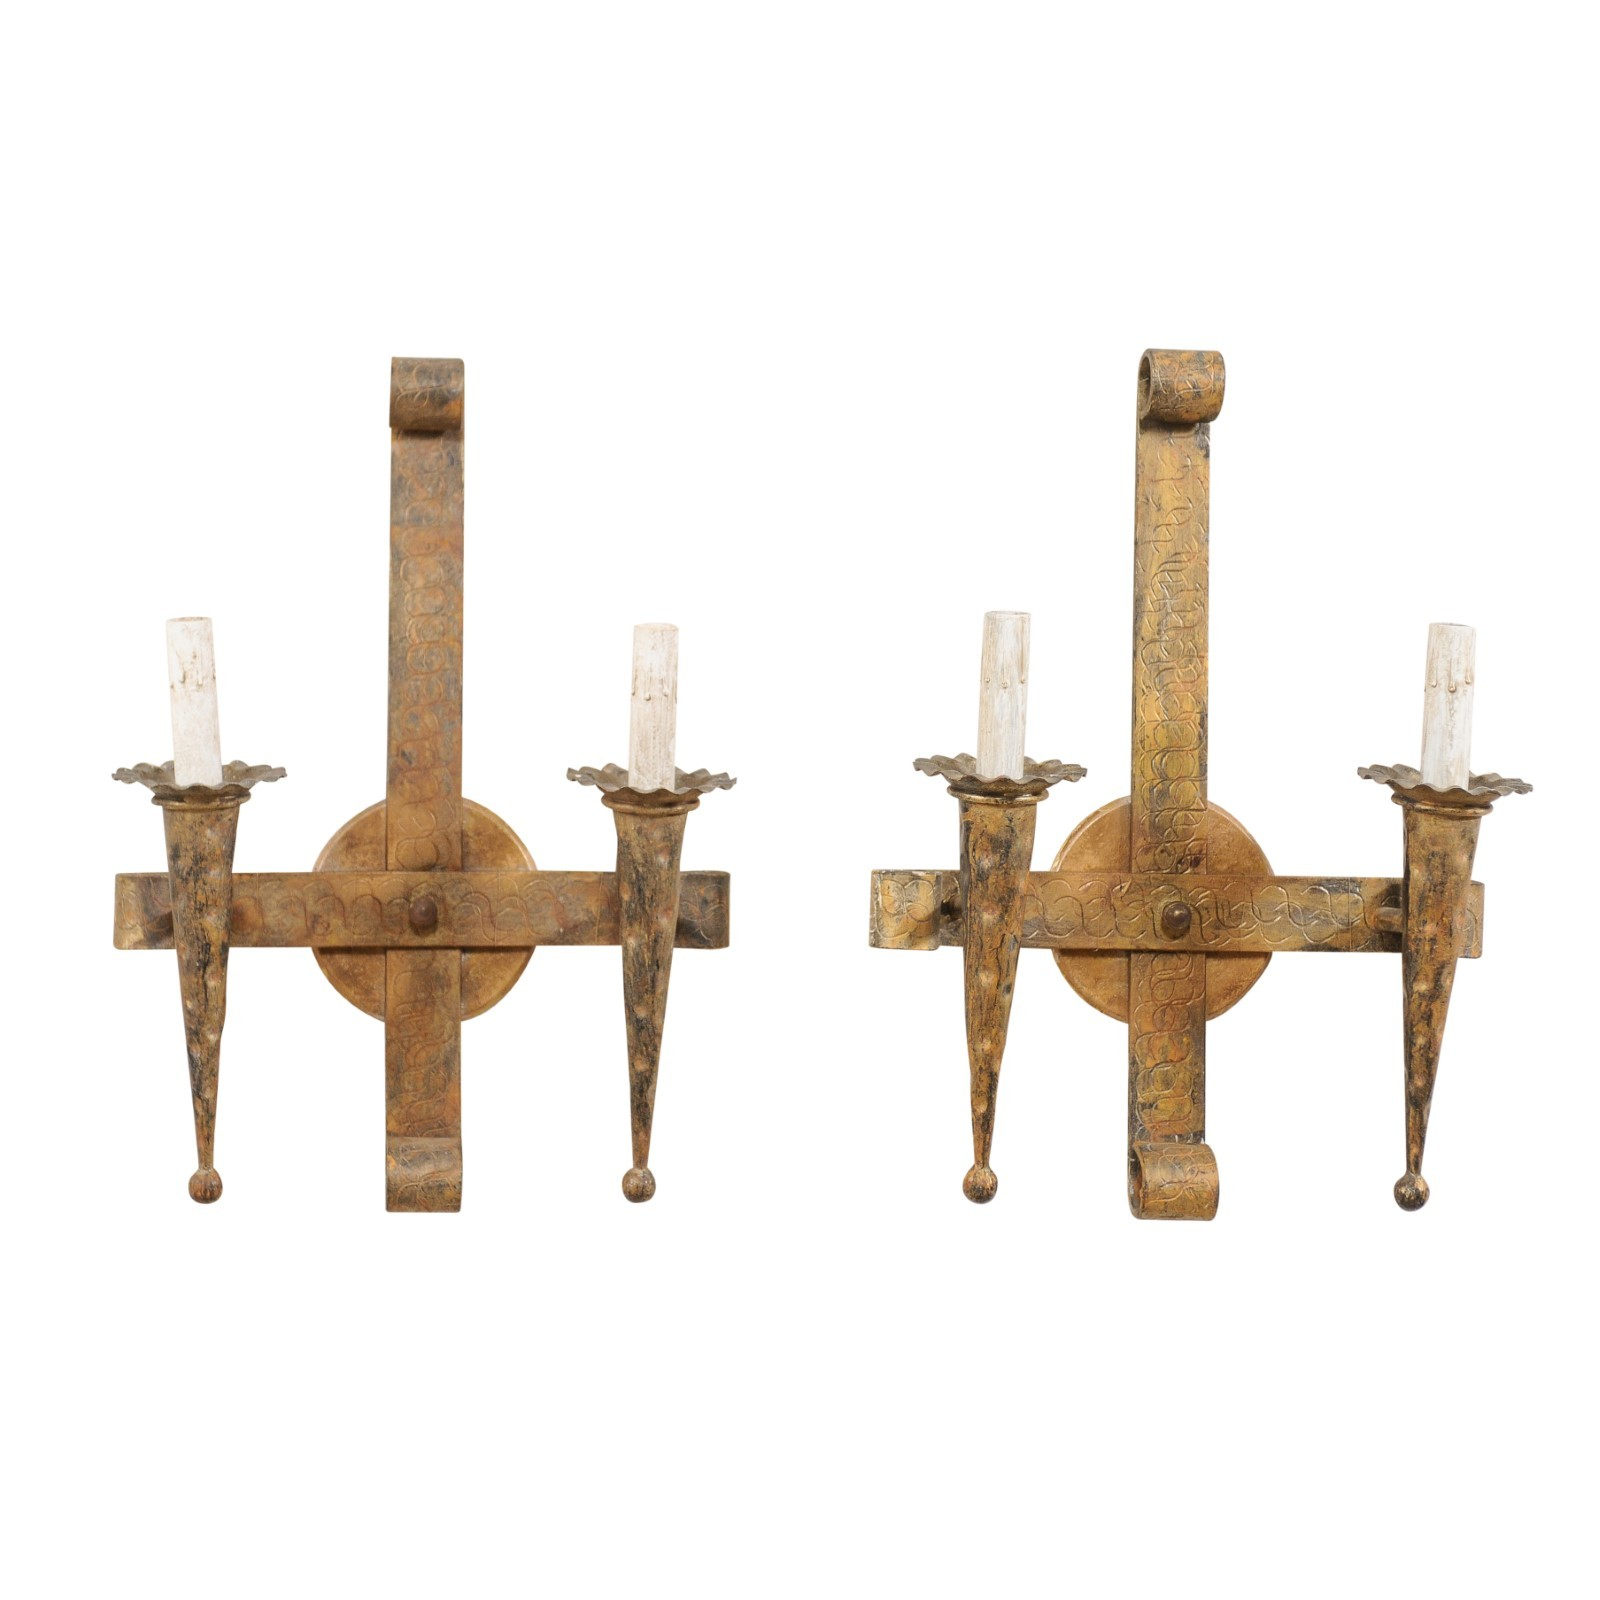 Pair French Gold-Tone Torch Light Sconces